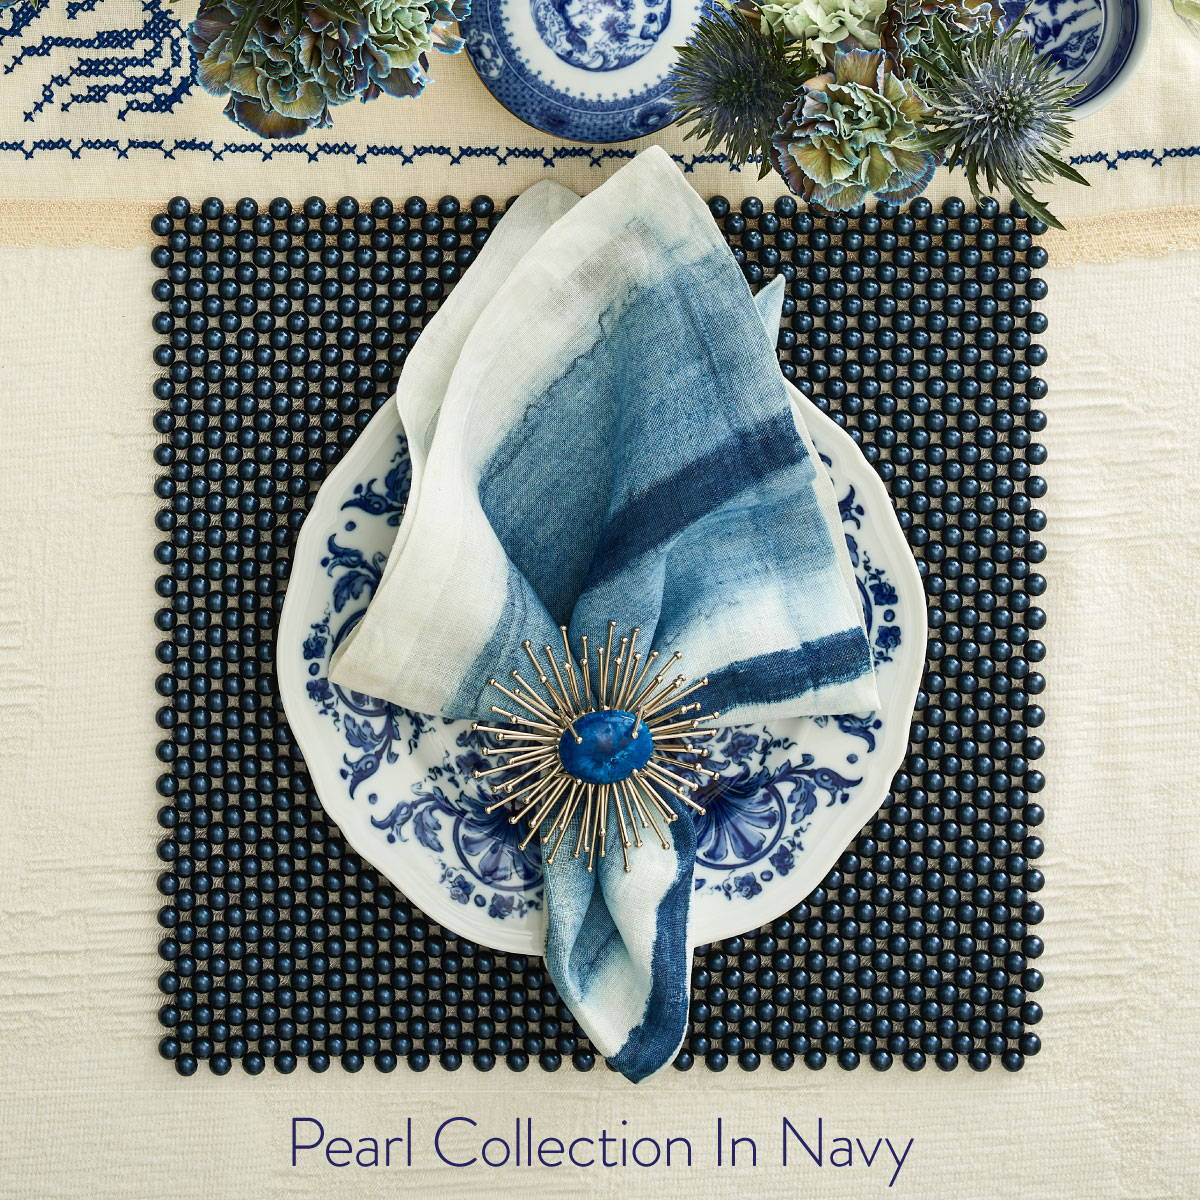 THE PEARL COLLECTION IN NAVY